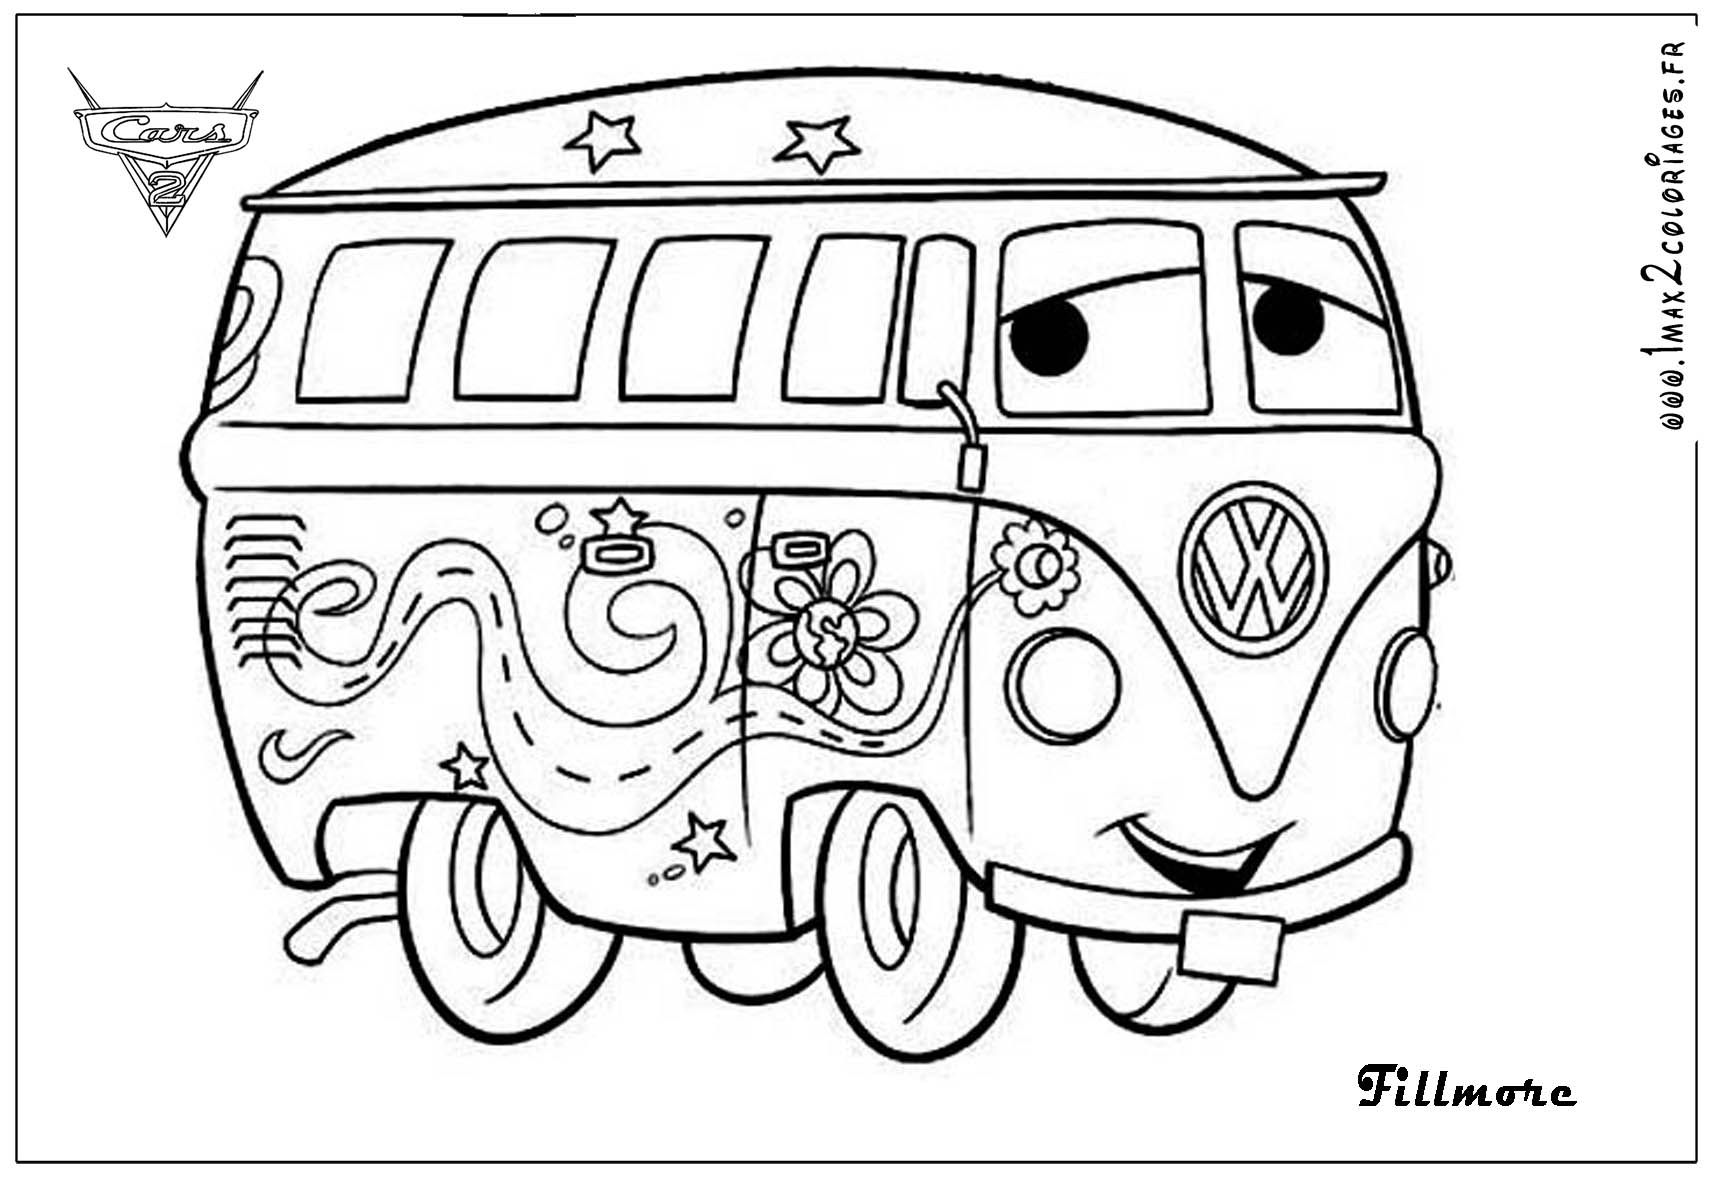 Cars 2 Printable Coloring Pages Coloriages Fillmore Cars2 Big